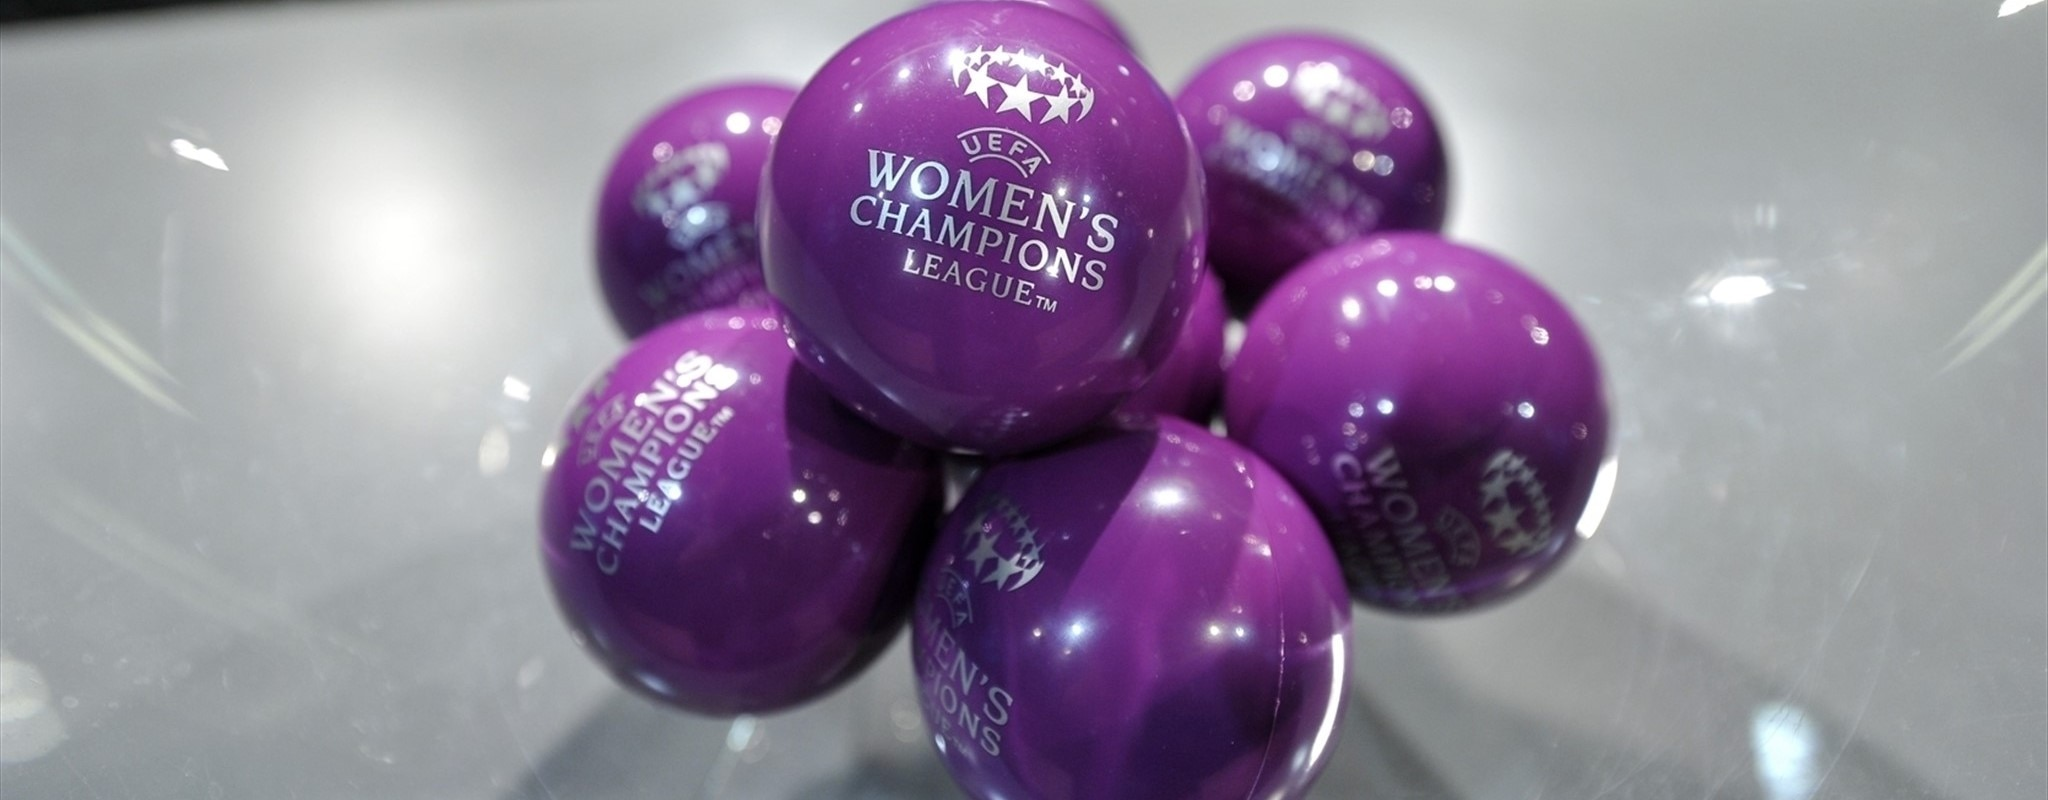 Women's Champions League qualifying round draw on Friday